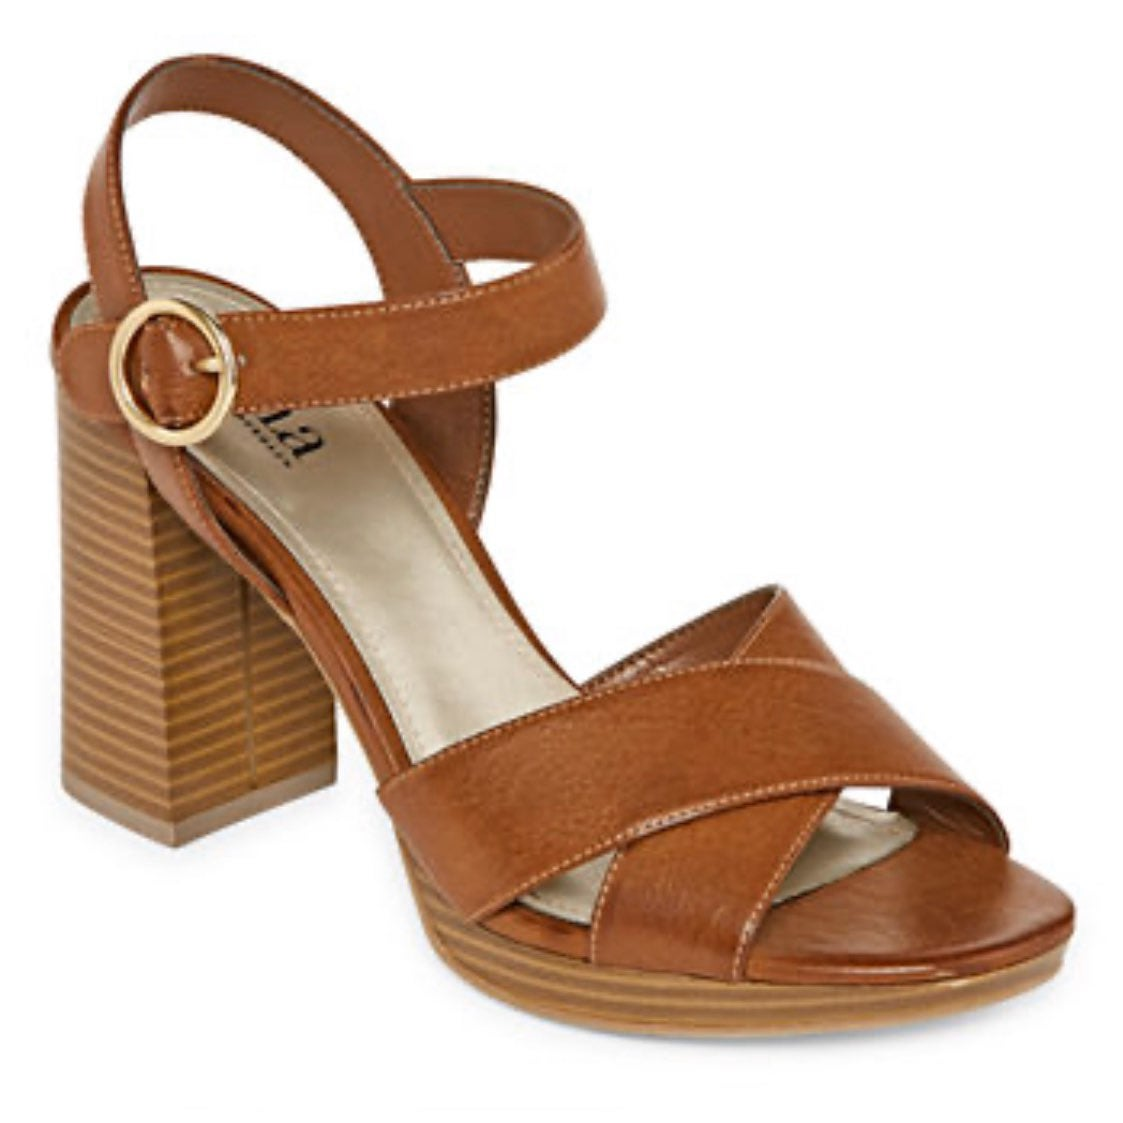 New a.n.a. Brown Heeled Sandals.